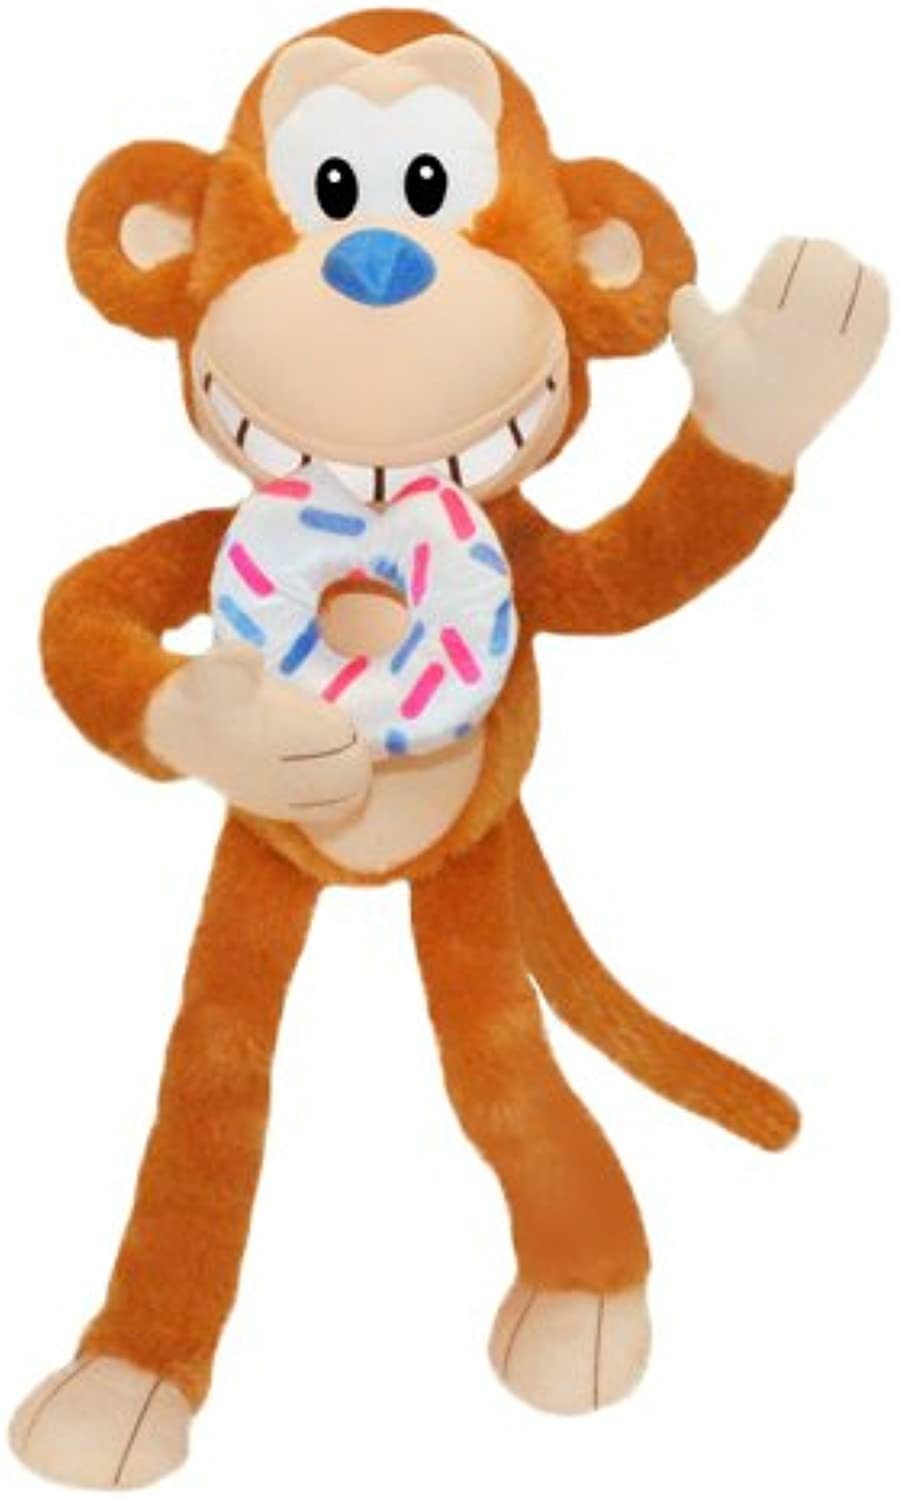 ToySource 4-500 S Crumbs Donut Monkey Plush Collectible Toy, Brown, 23